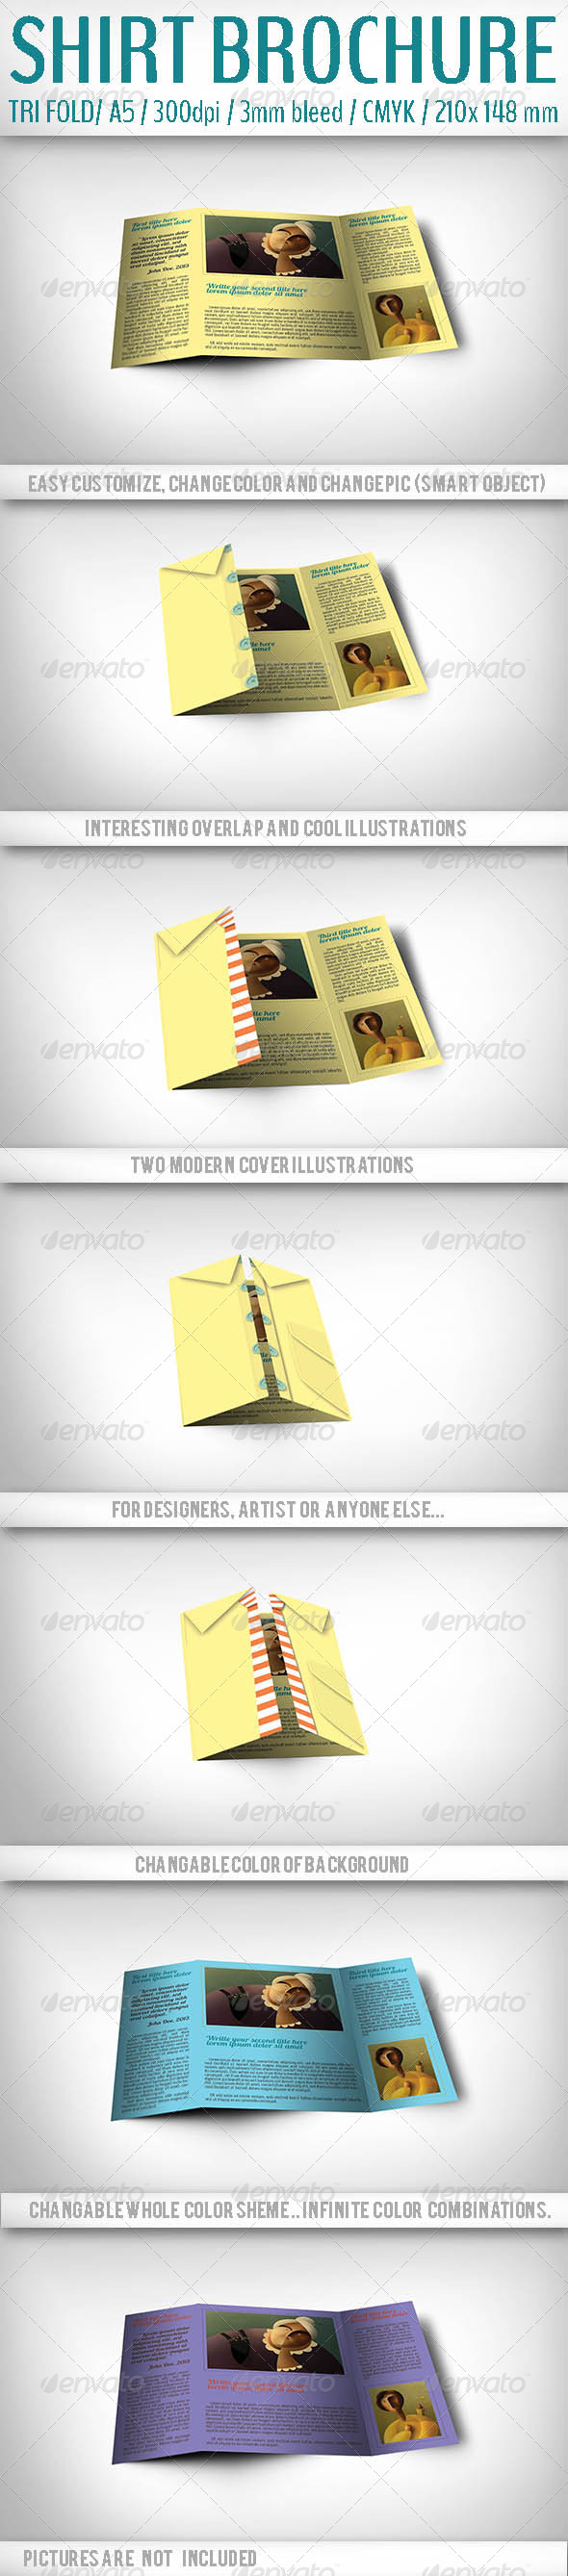 GraphicRiver Trifold Shirt Brochure 4822327